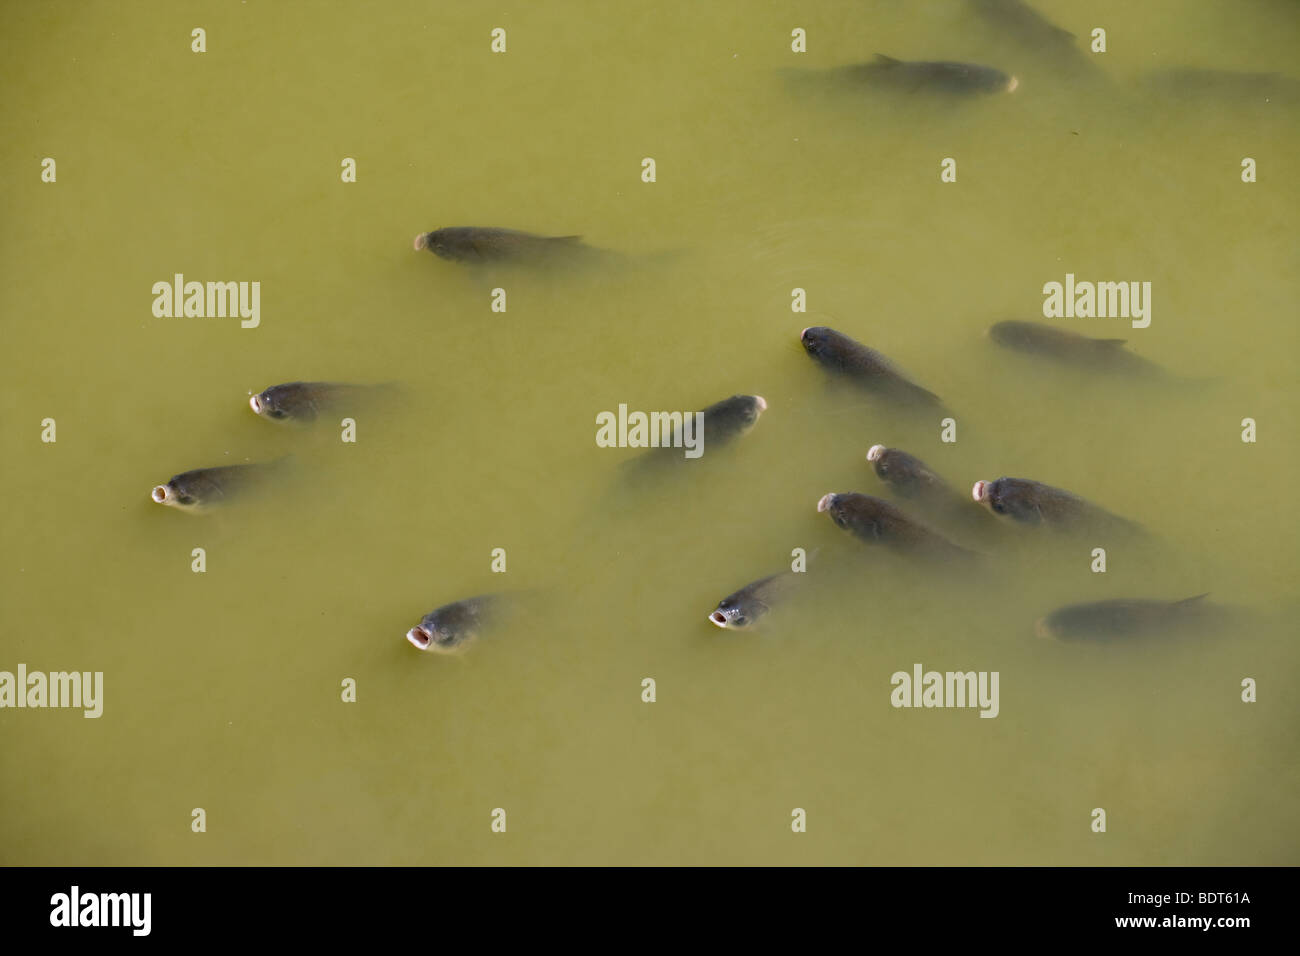 carp dying in low-level pool during dry period, East Fork Des Moines River, Okamanpedan State Park, Iowa - Stock Image